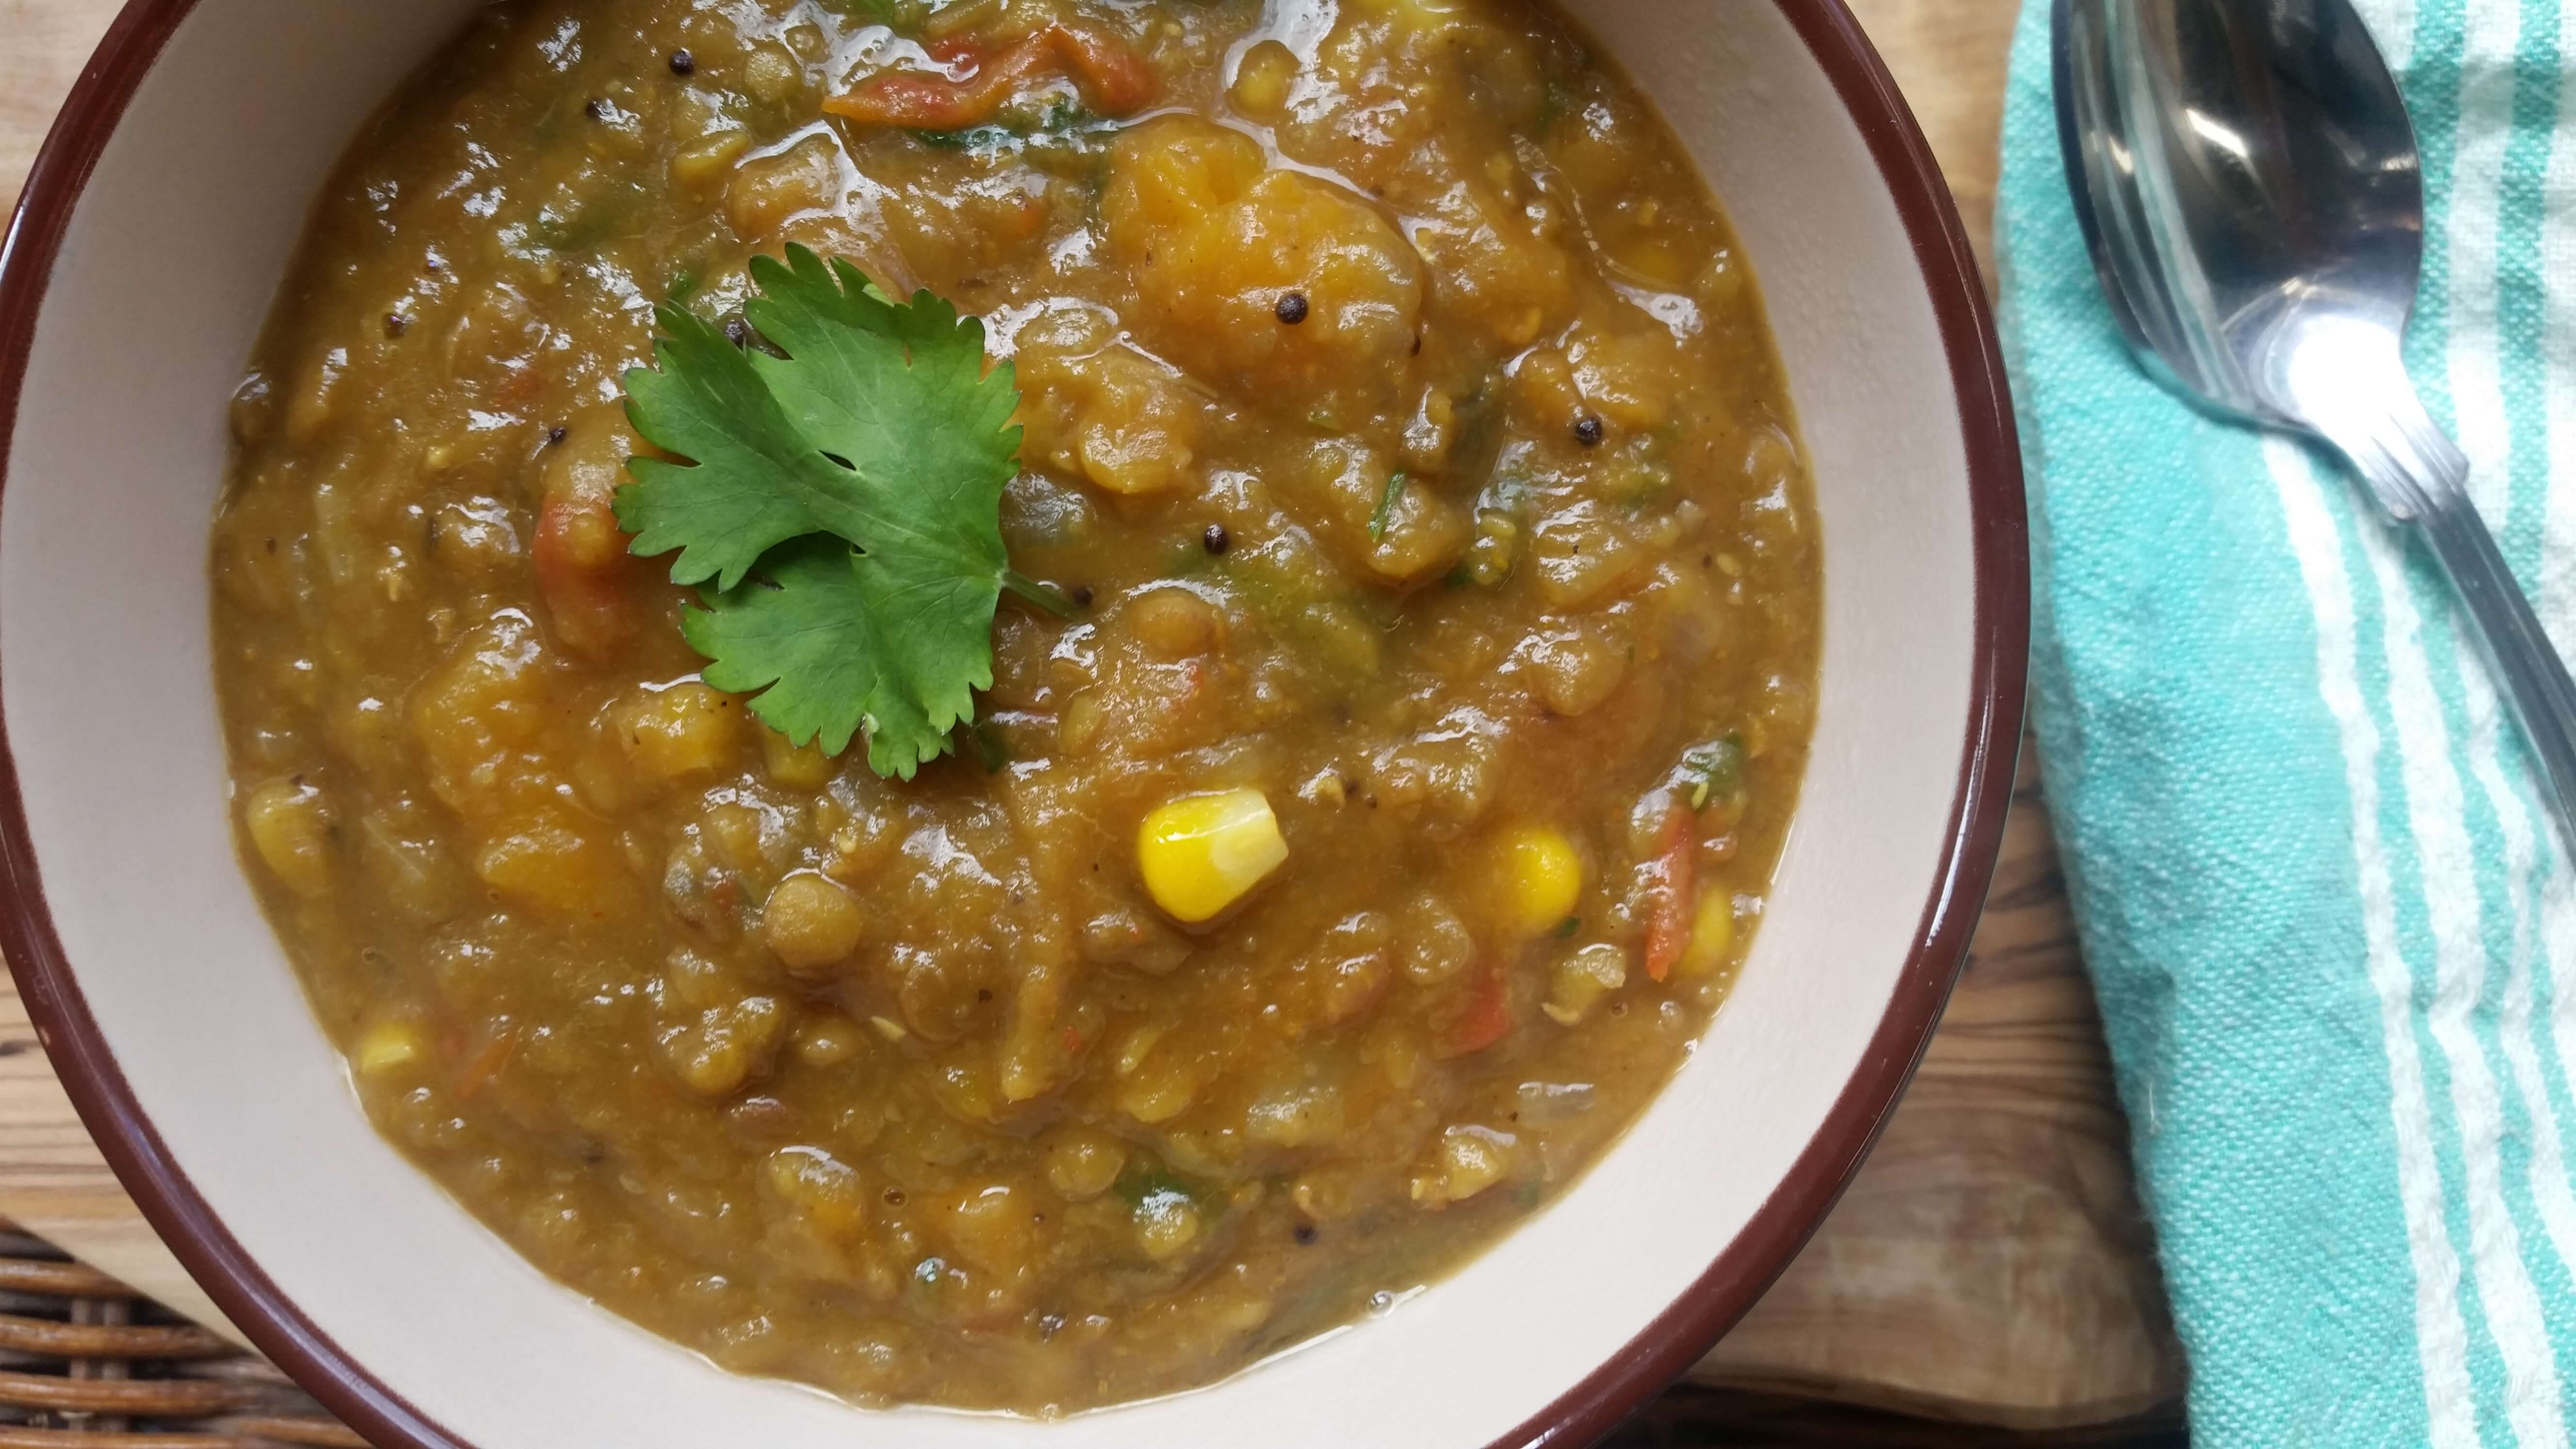 Spicy Lentil Stew Recipe with Butternut Squash